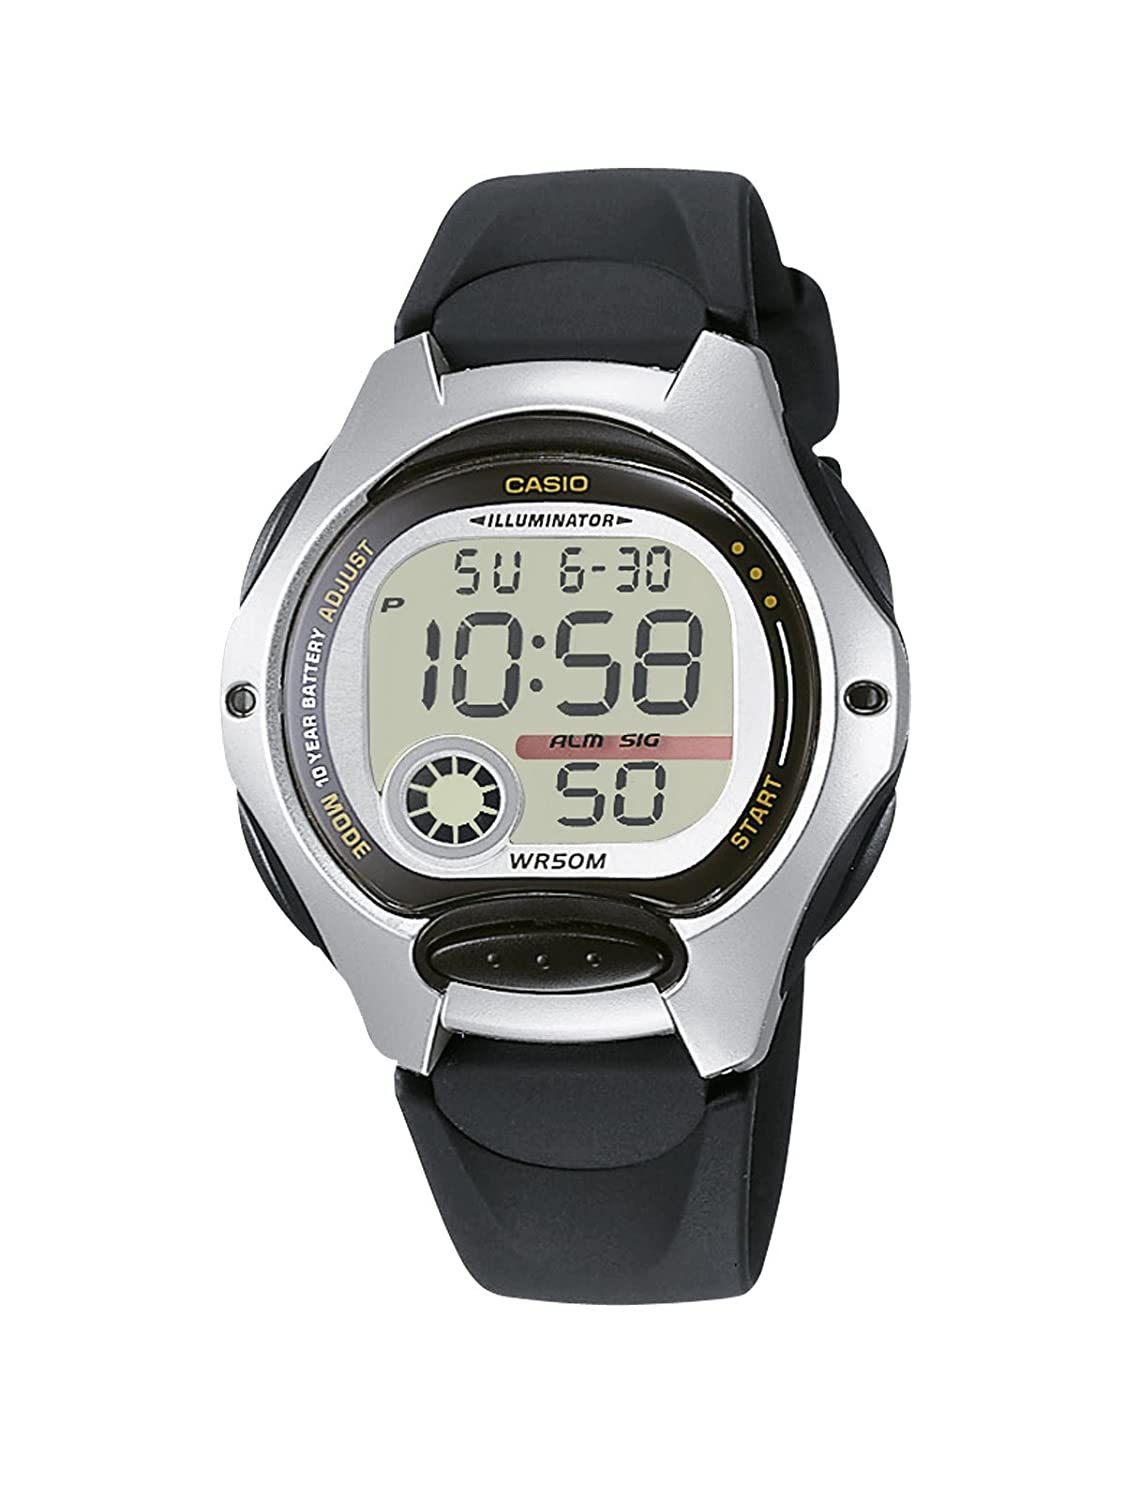 Amazon.com: CASIO - Unisex Watches - CASIO Collection - Ref. LW-200-1AVEF: Watches